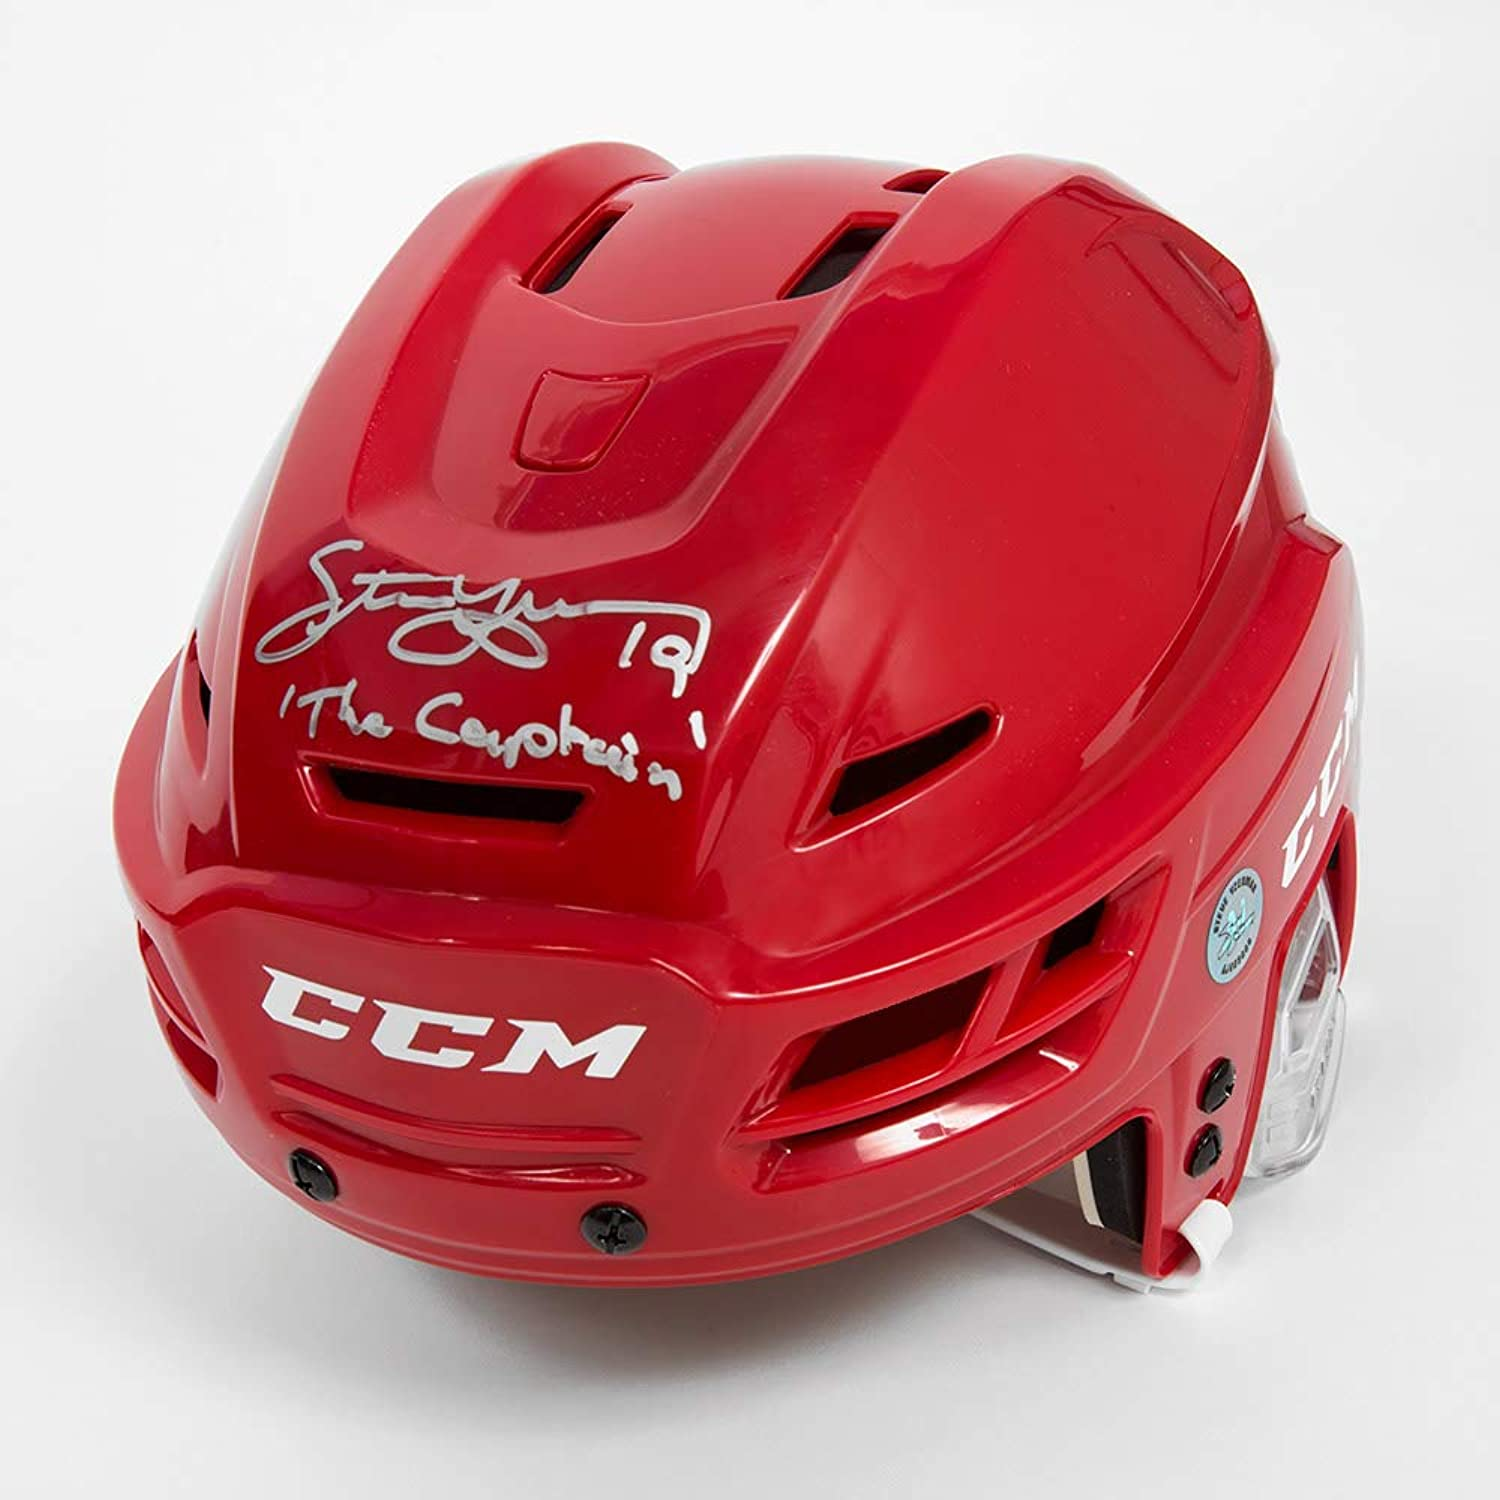 Steve Yzerman Signed Red CCM Detroit Red Wings Hockey Helmet with The Captain